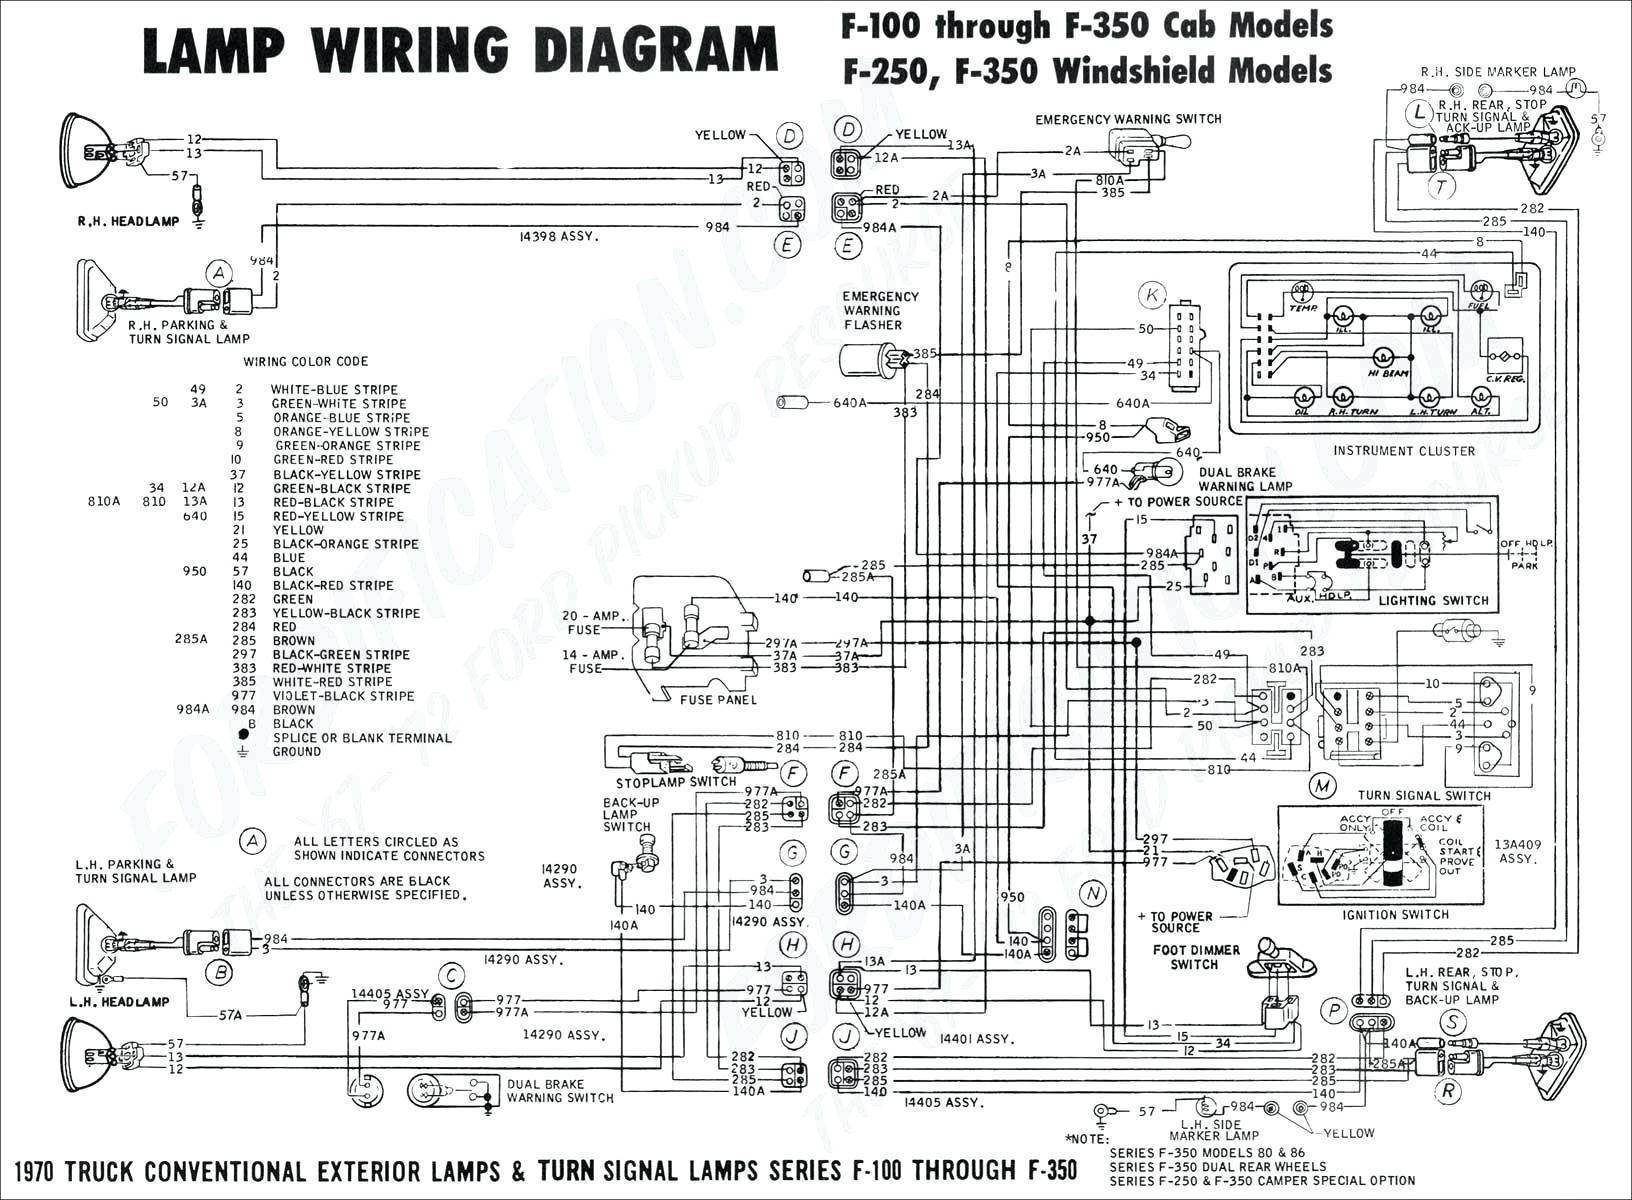 2003 Saturn Vue Wiring Diagram ford Ecm Wiring Diagrams Data Wiring Diagrams • Of 2003 Saturn Vue Wiring Diagram Saturn Vue Wiring Diagram Wiring Diagram and Schematics